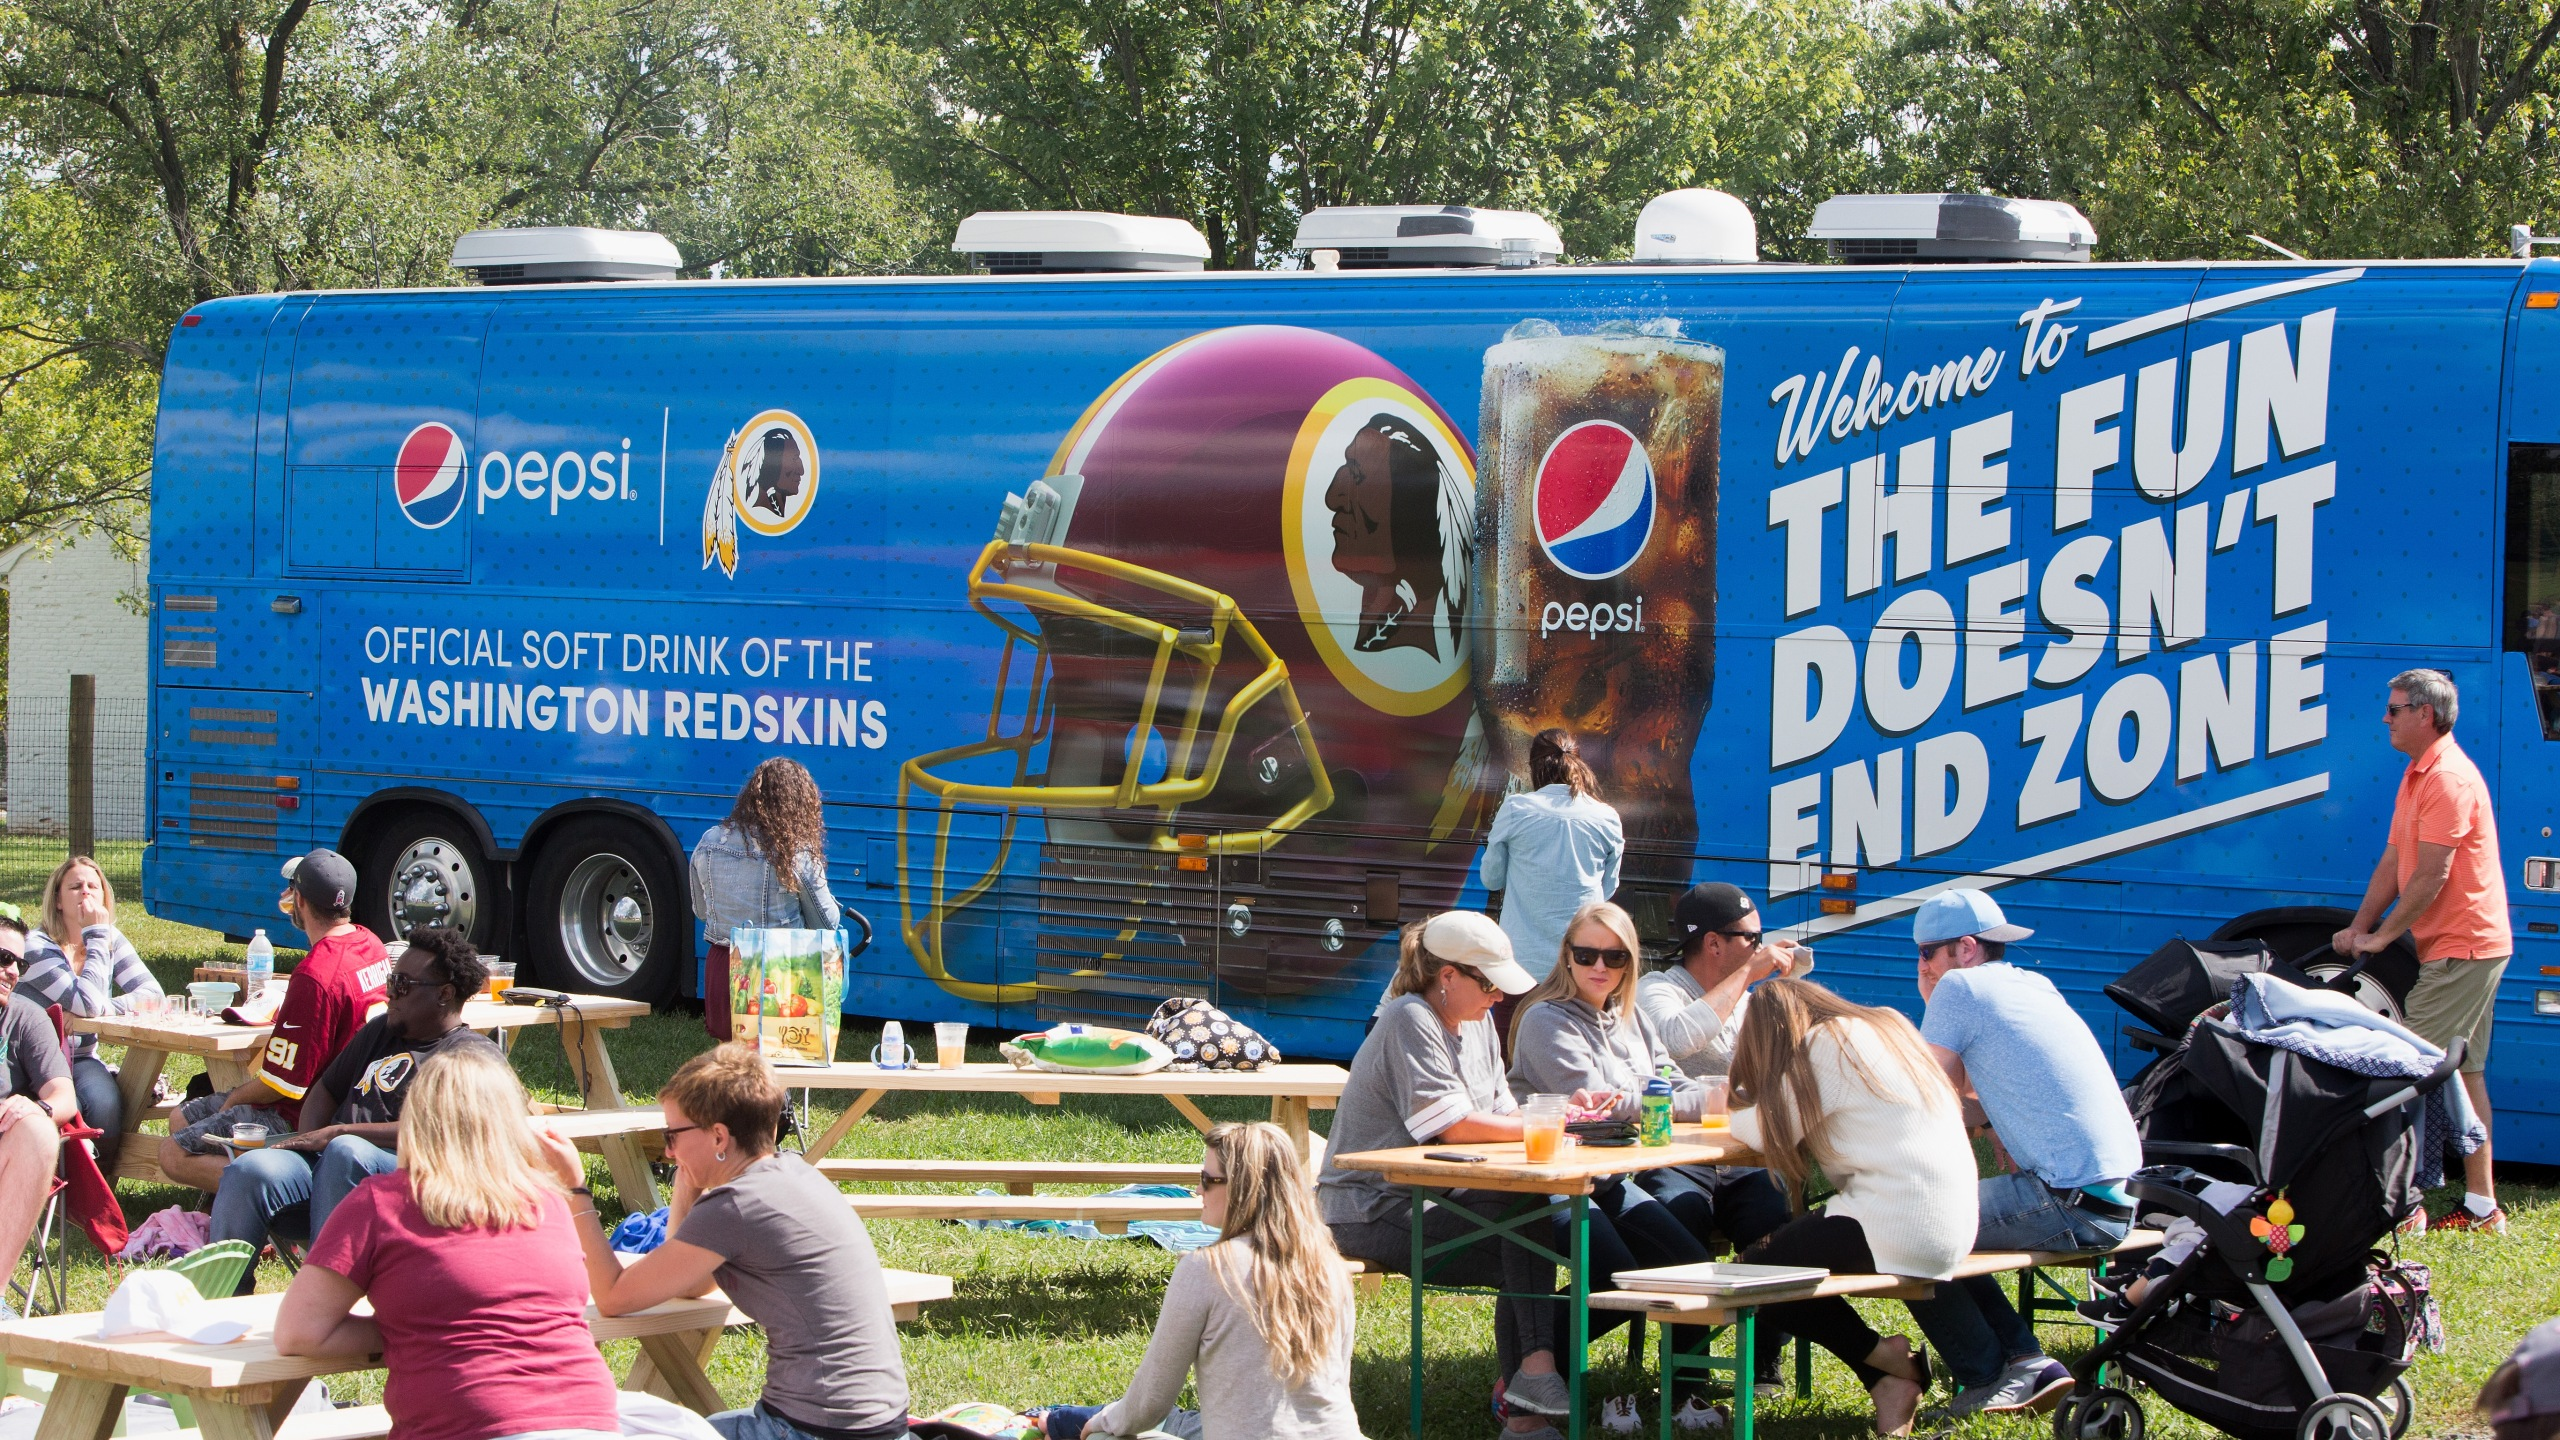 Guests attend Pepsi and Washington Redskins pep rally at Vanish Brewery on Sept. 9, 2017 in Leesburg, Virginia. (Credit: Tasos Katopodis/Getty Images for Pepsi)